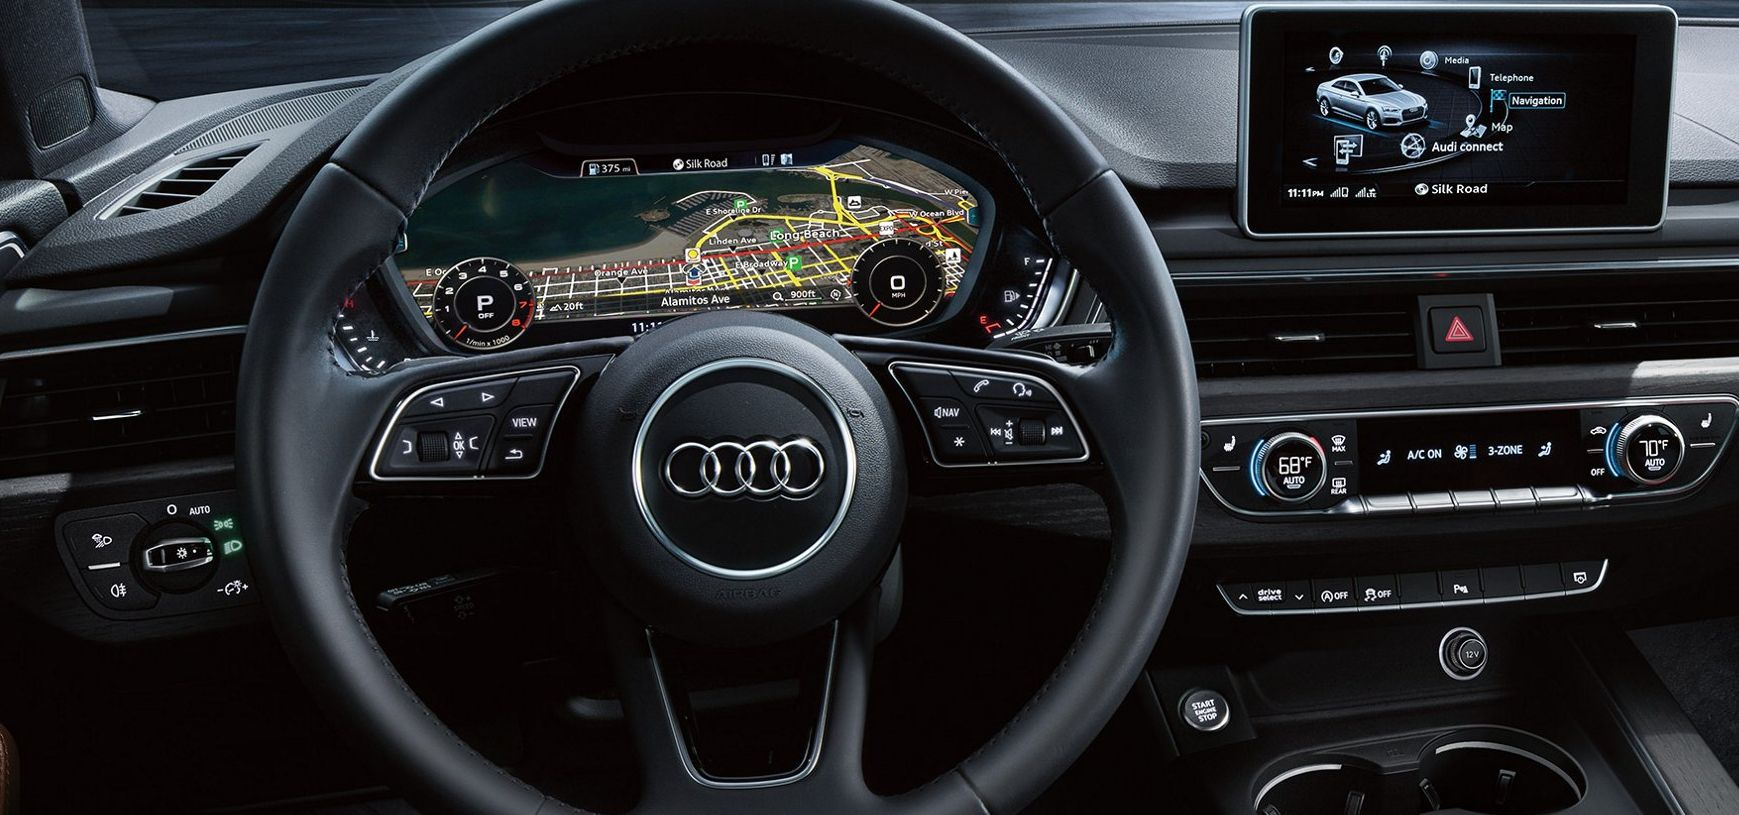 See More In The 2018 Audi A5 Interior